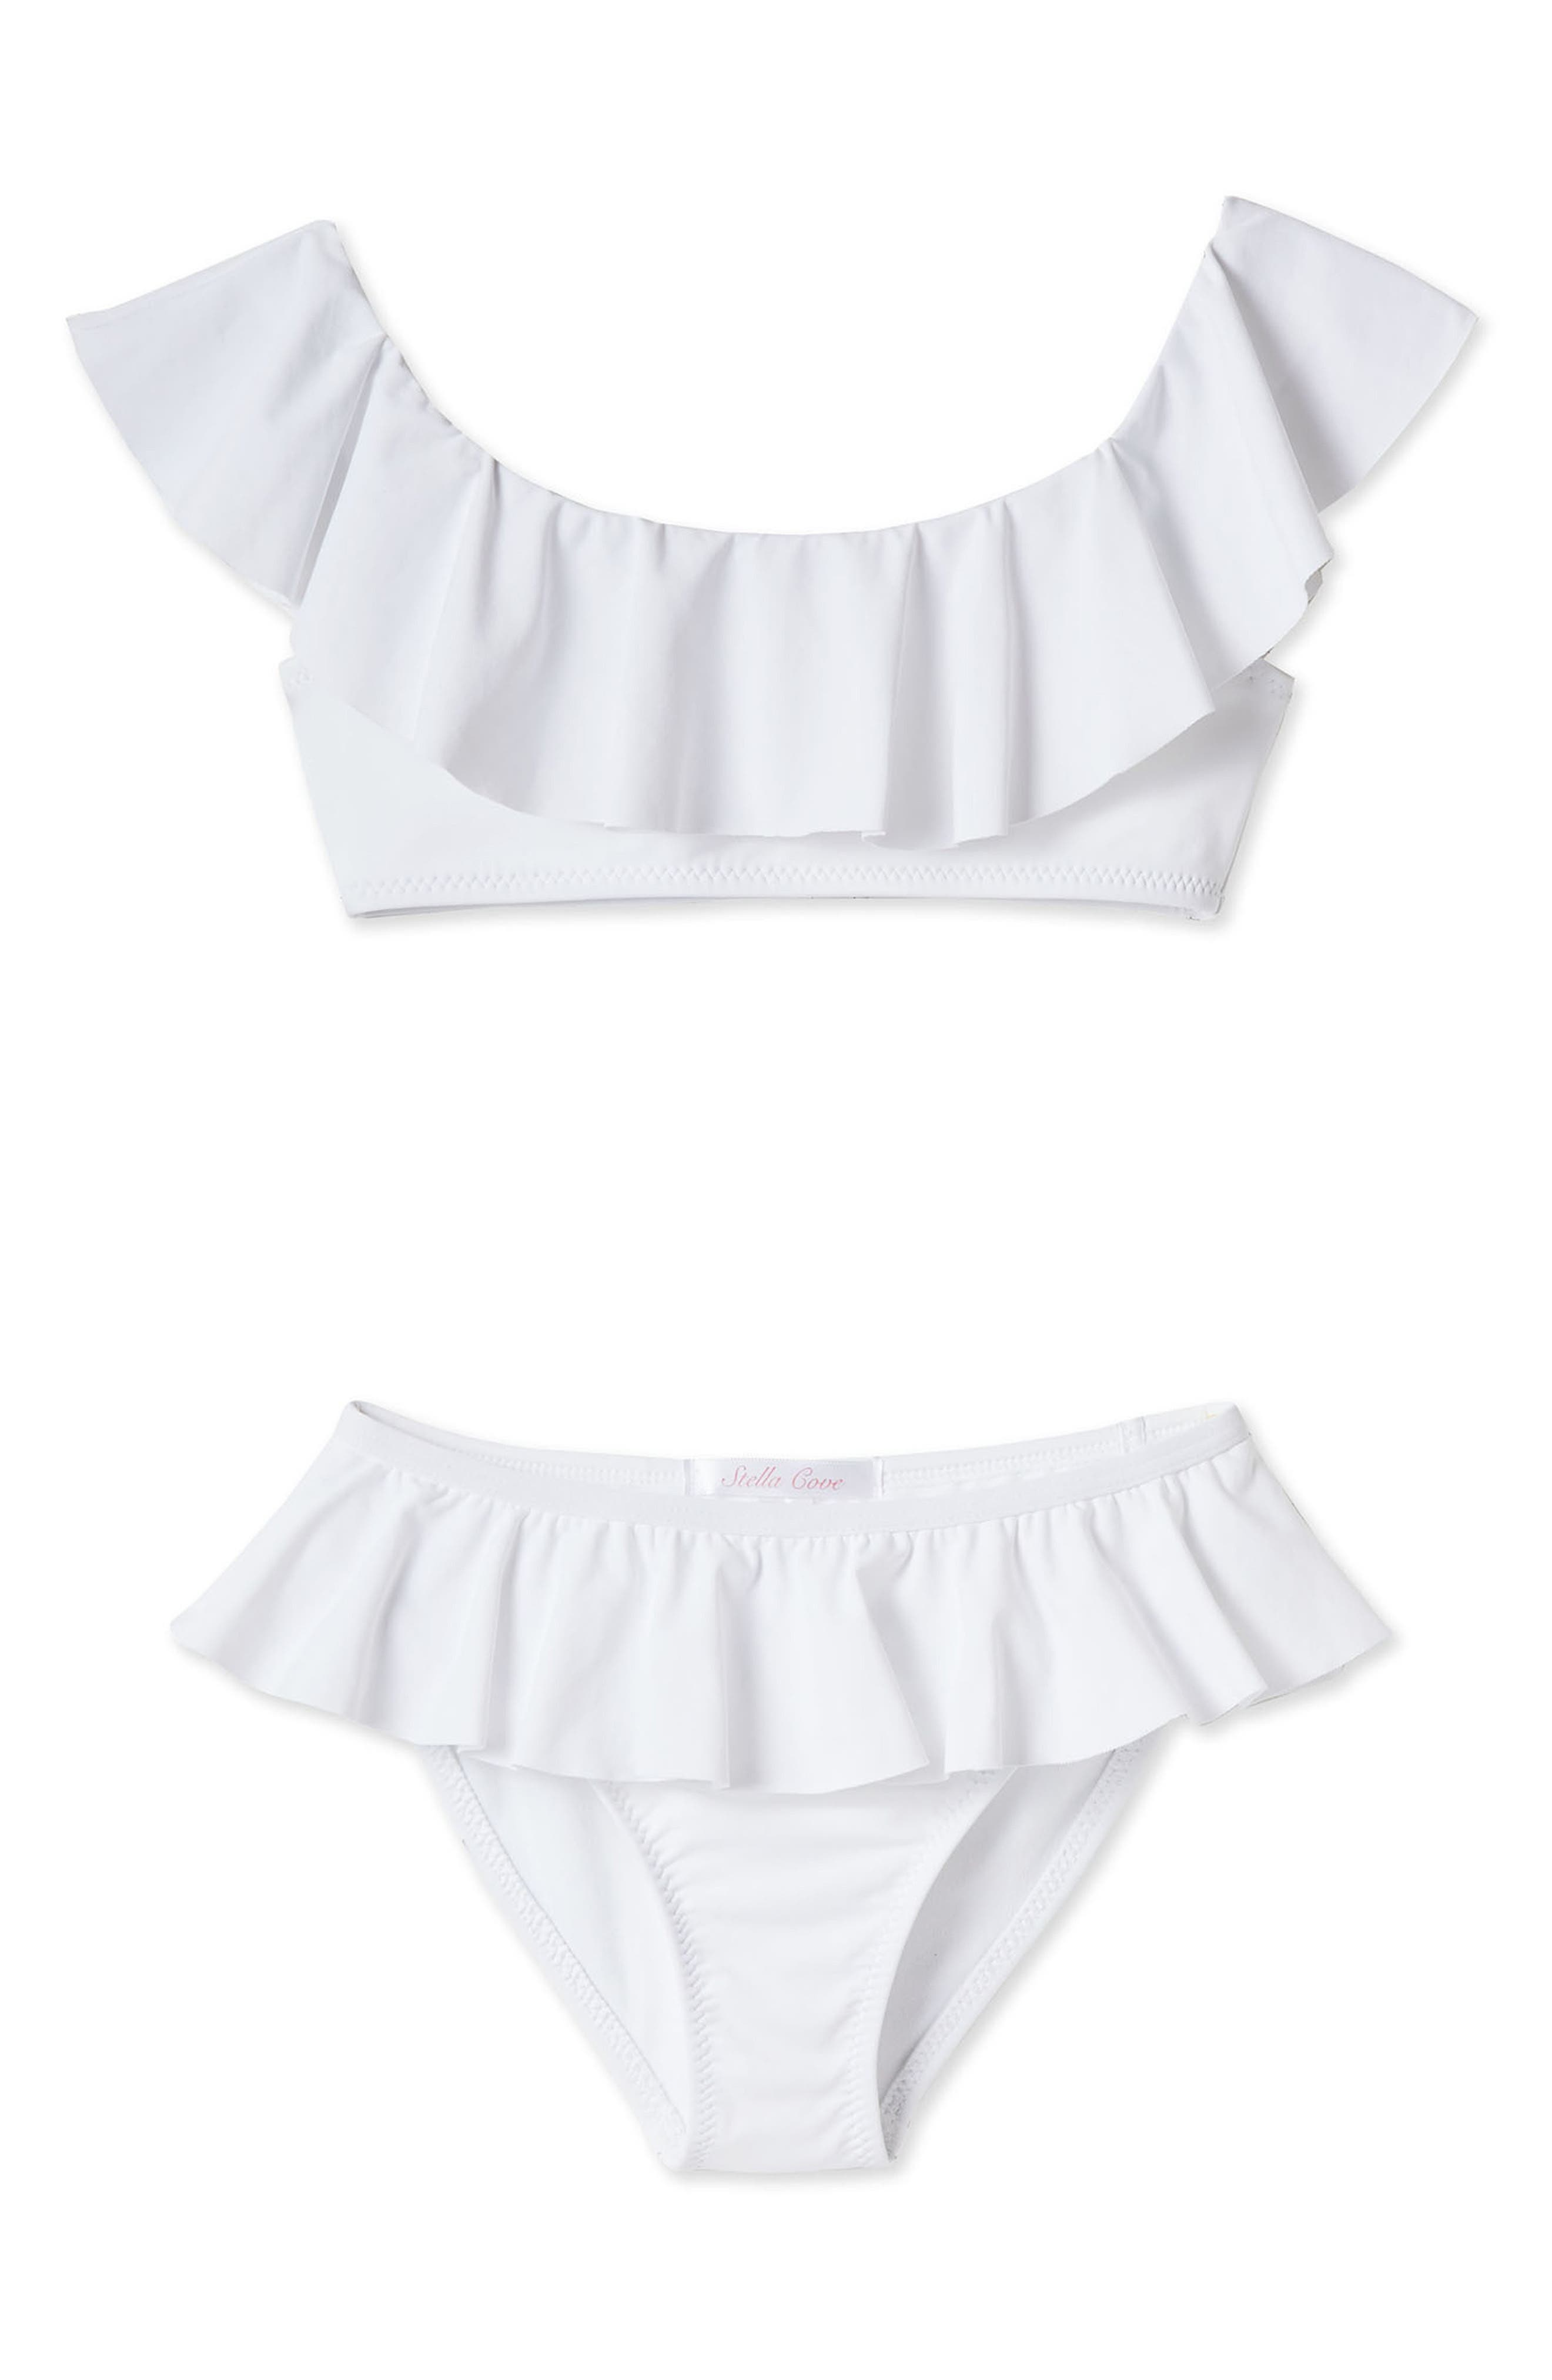 7fbbd7af7d9 Girl's Stella Cove Ruffle Two-Piece Swimsuit, White